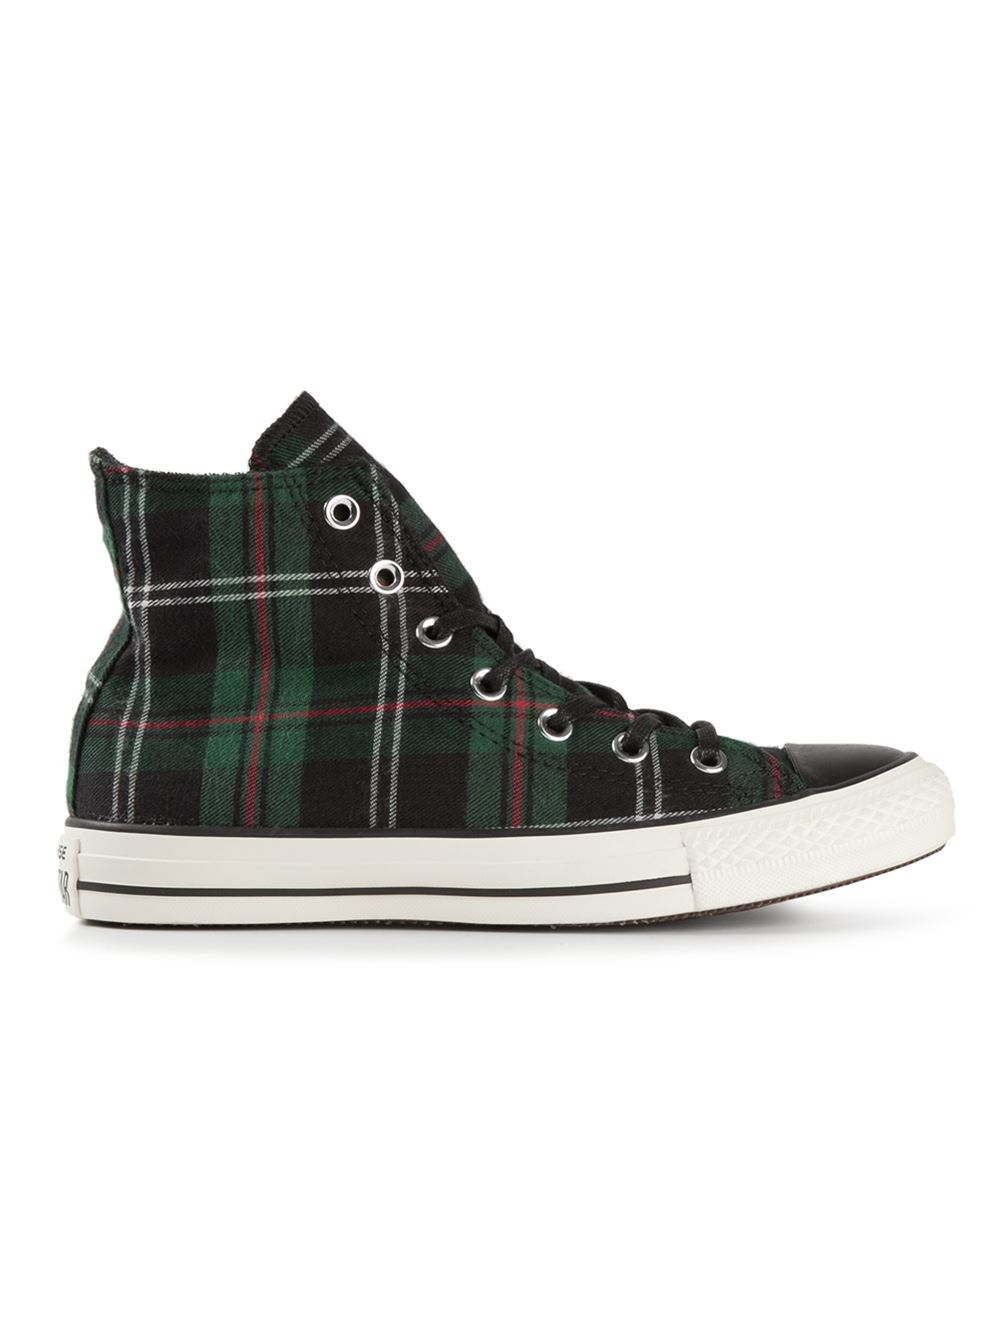 2a6b748fd18 Lyst - Converse Tartan Hi-Top Sneakers in Green